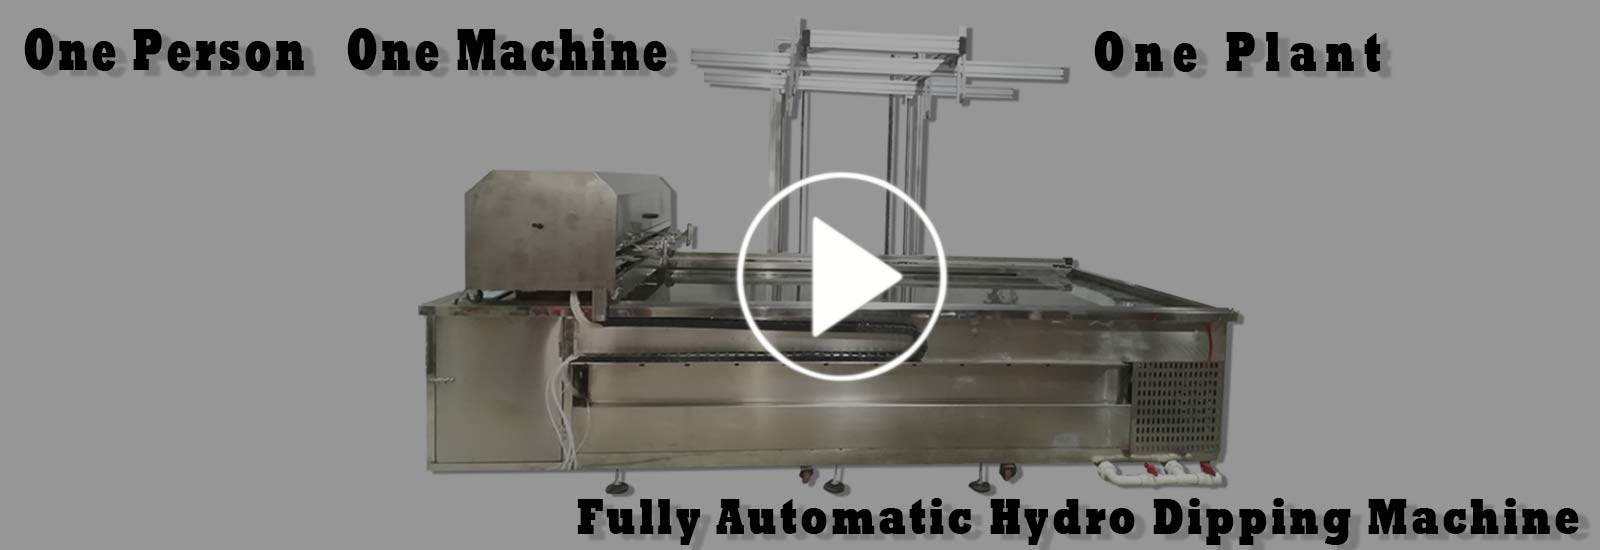 hydro dipping machine video banner